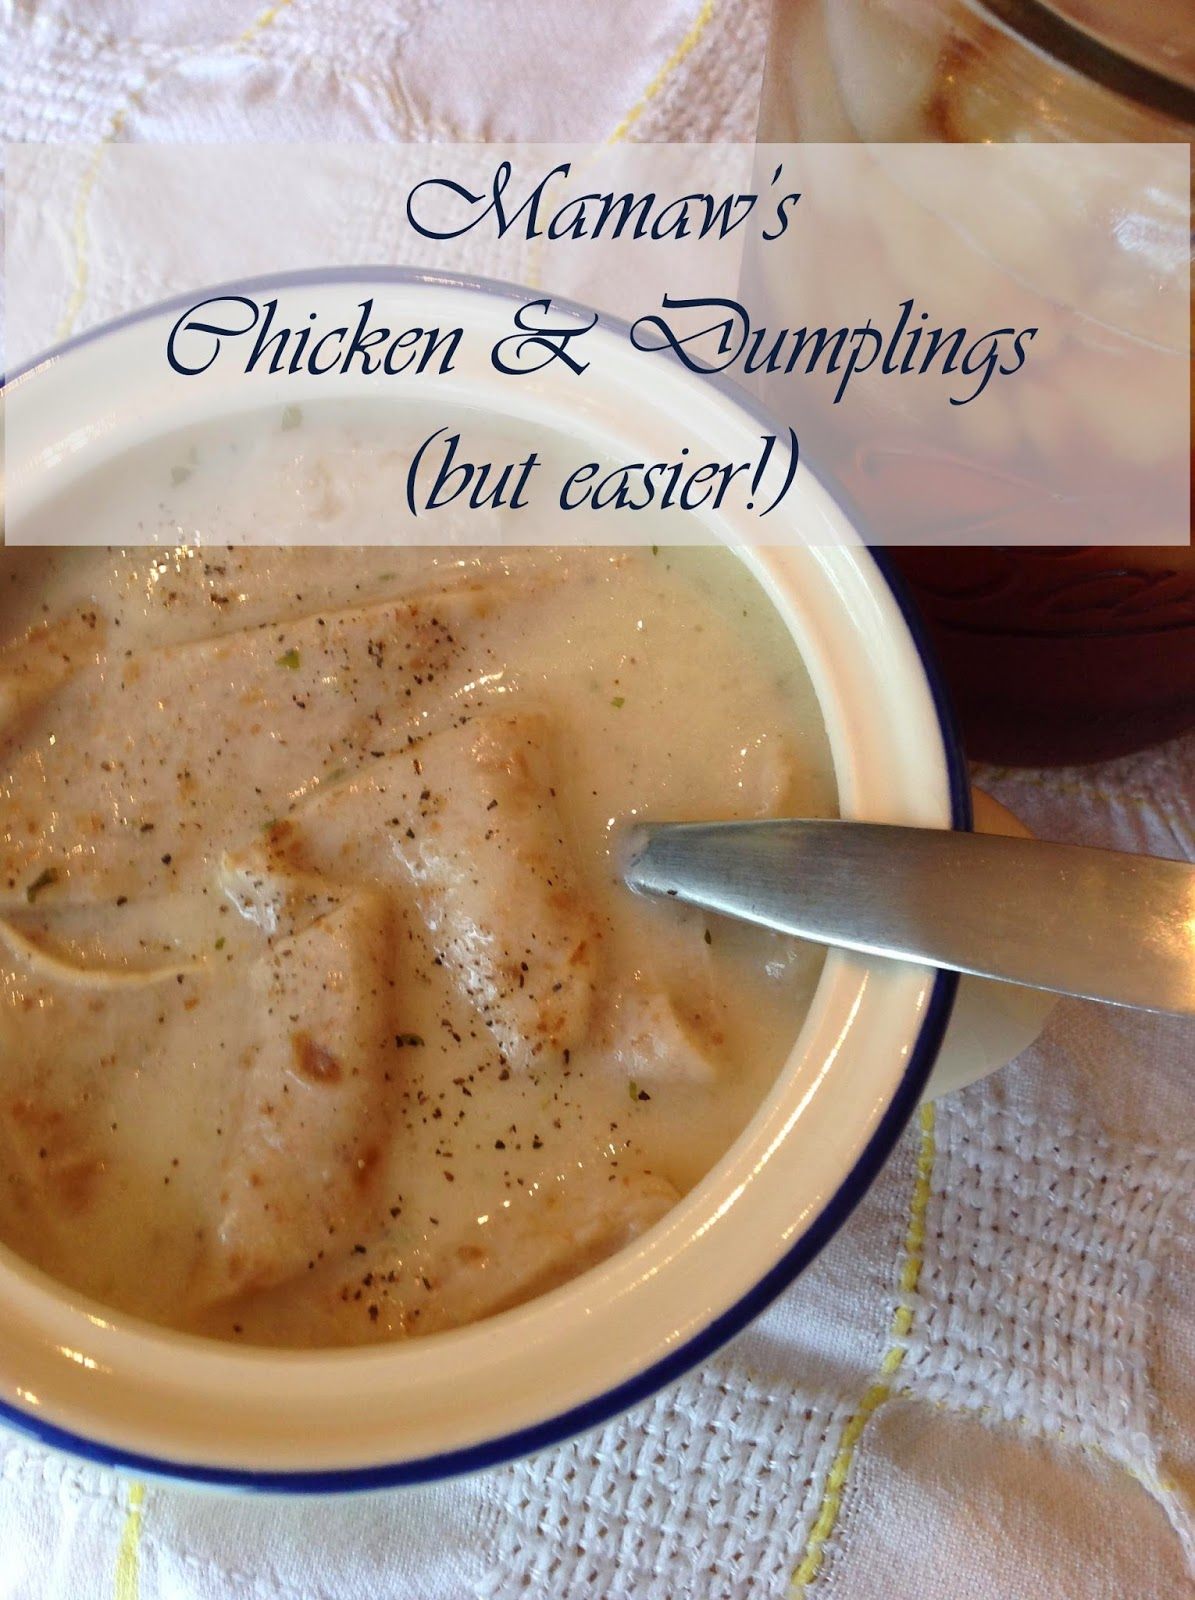 Amazing chicken and dumplings recipe